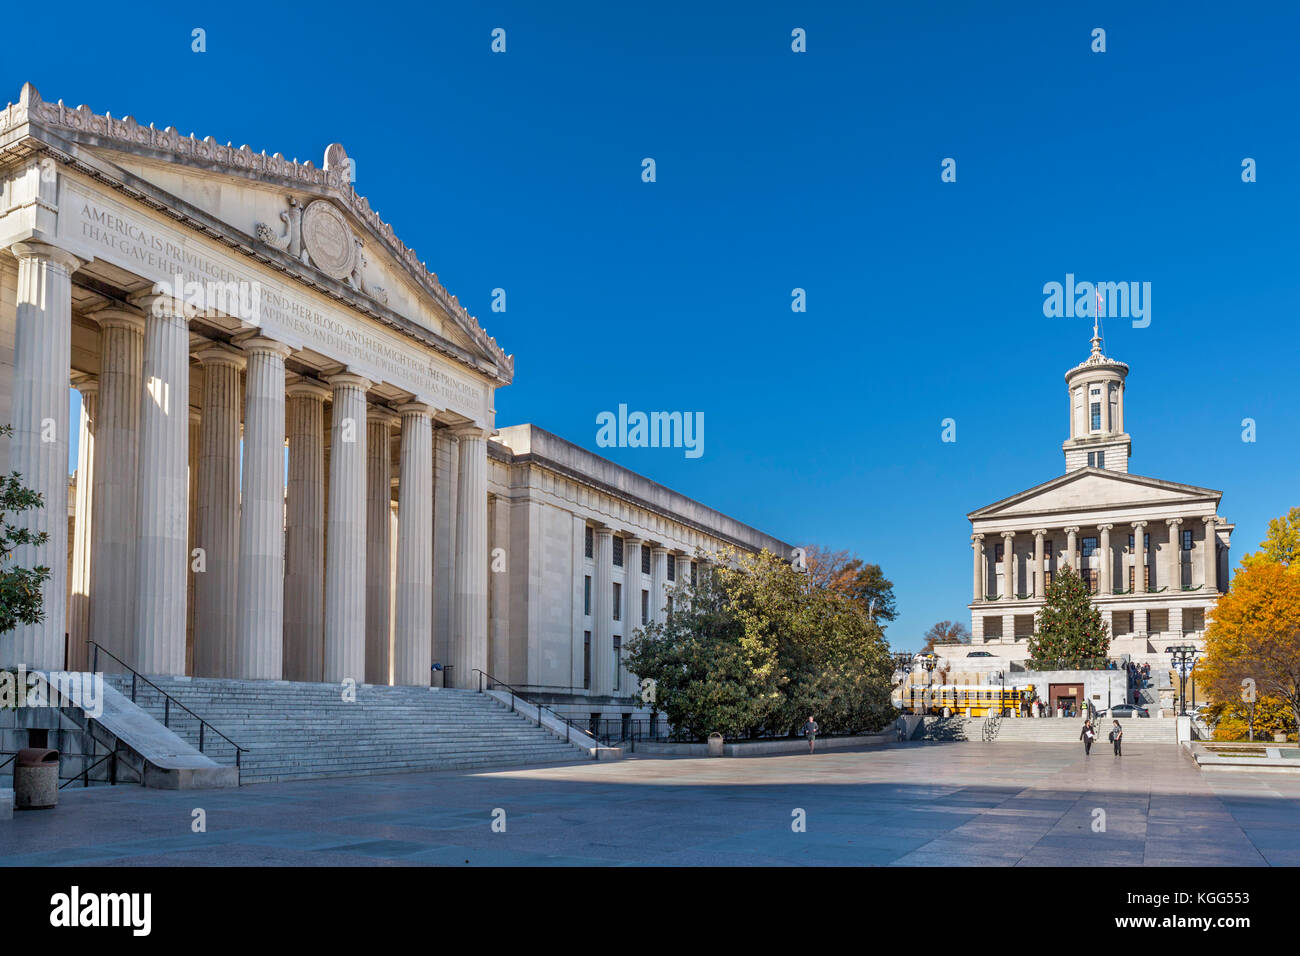 Legislative Plaza with the Tennessee General Assembly building on the left and the State Capitol to the right, Nashville,Tennessee, - Stock Image